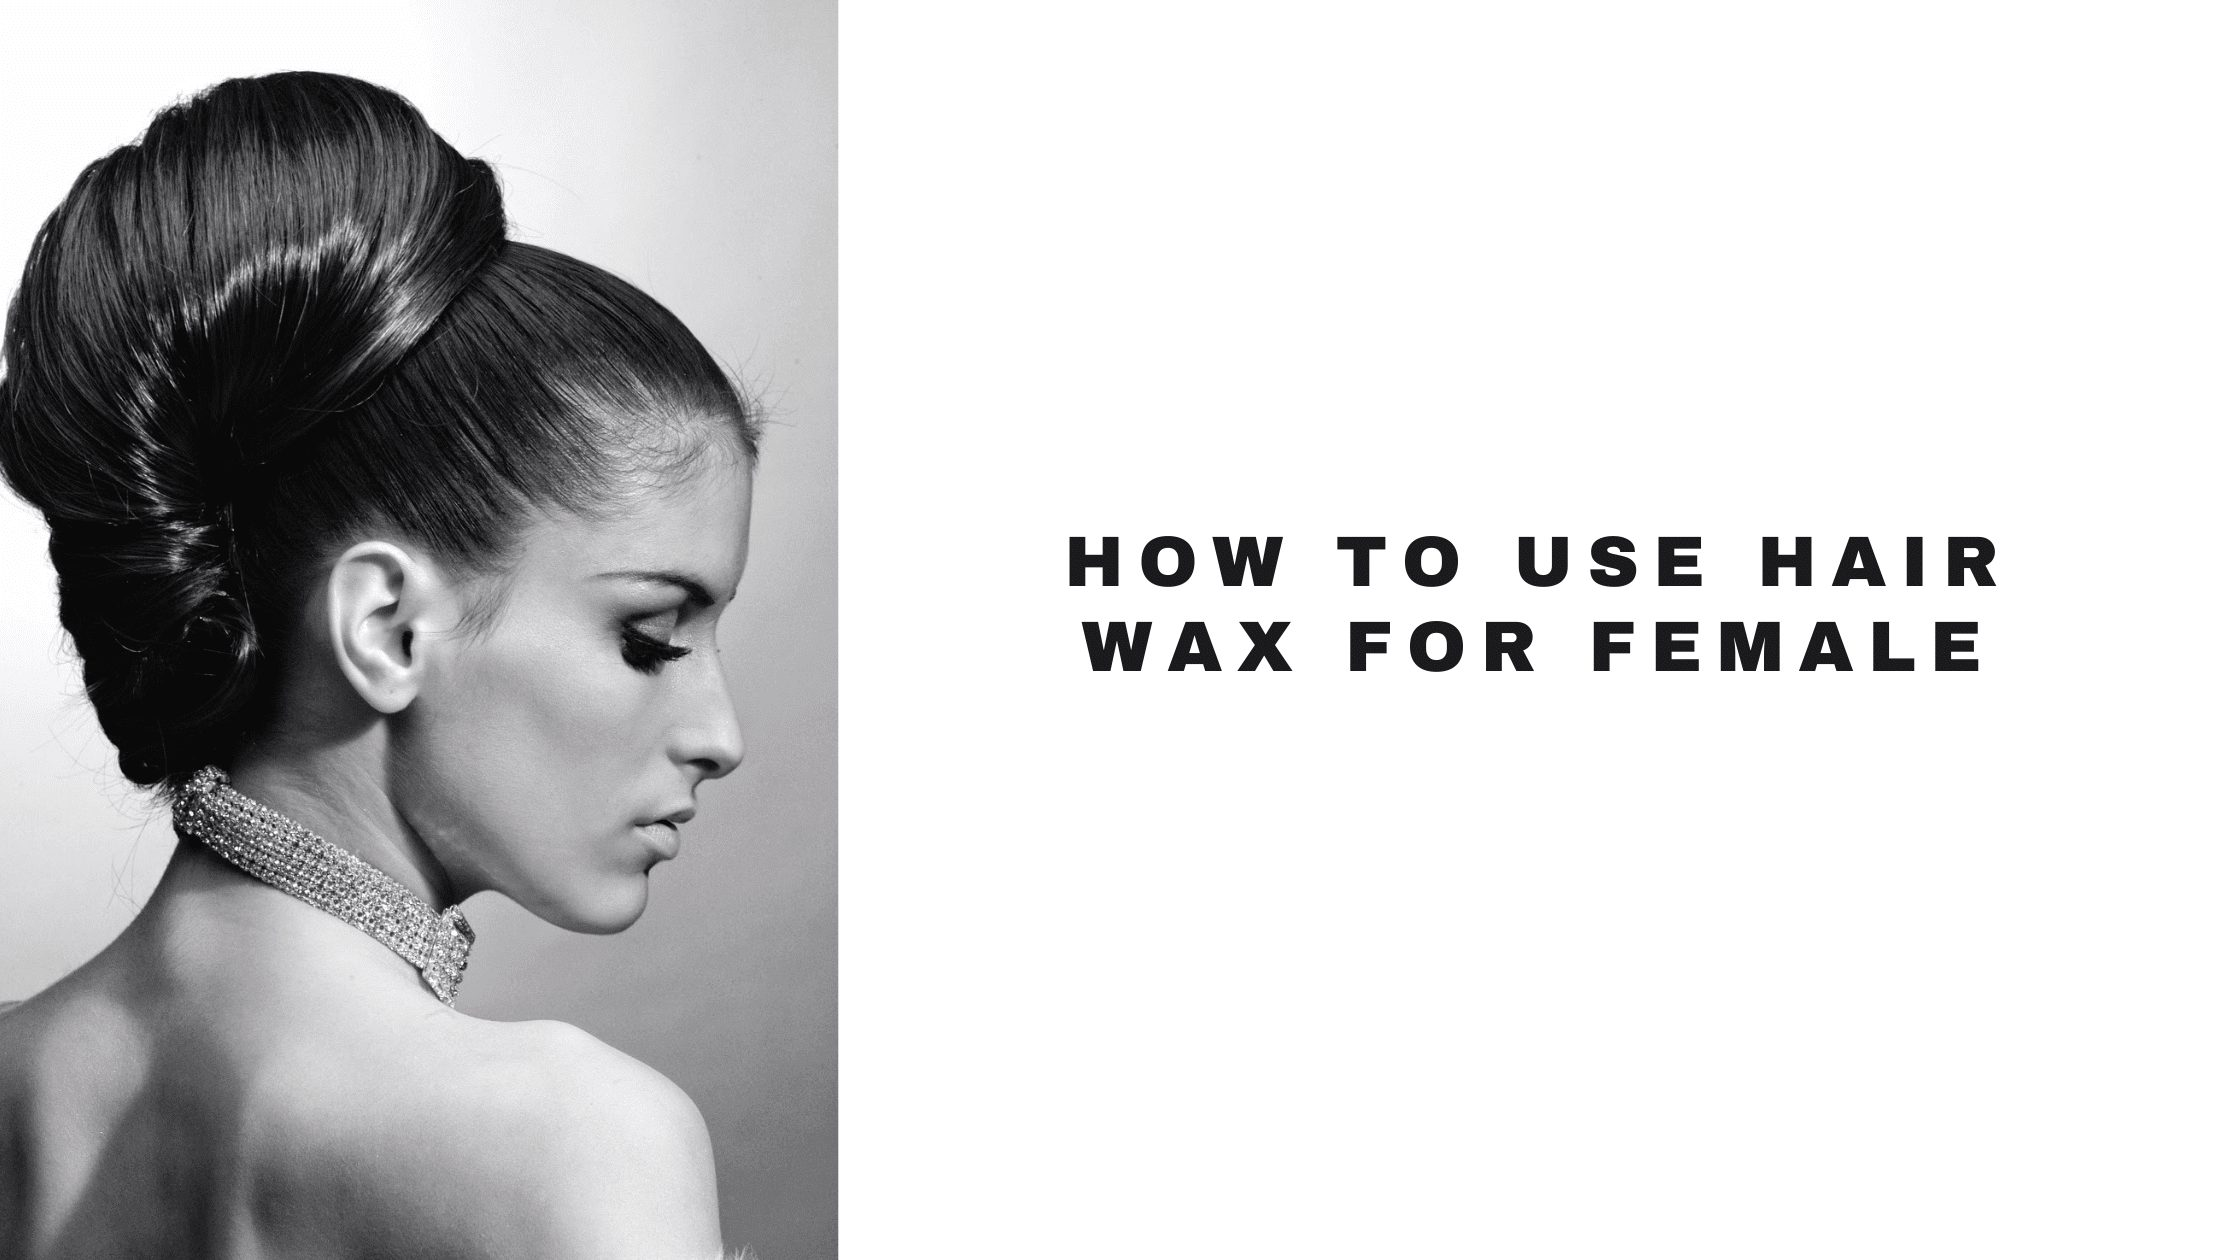 How To Hair Wax For Female